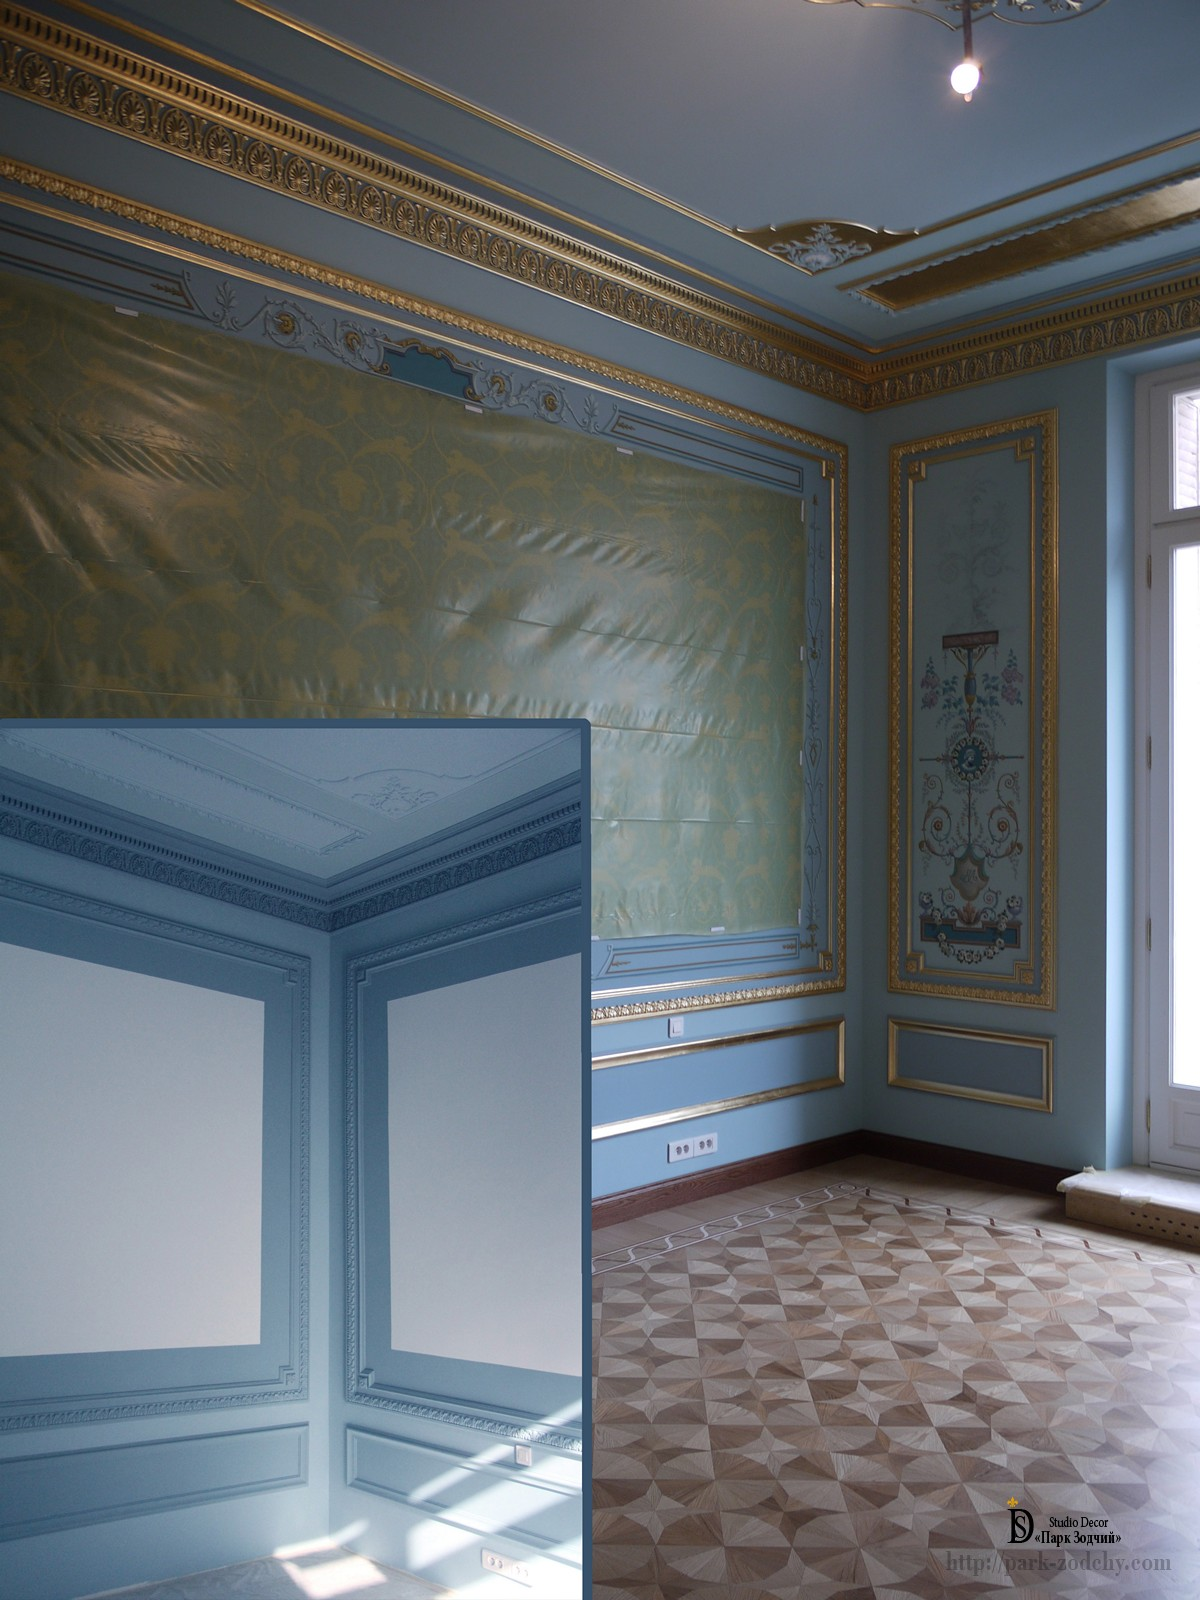 The stages of painting architectural mirrors in the interior